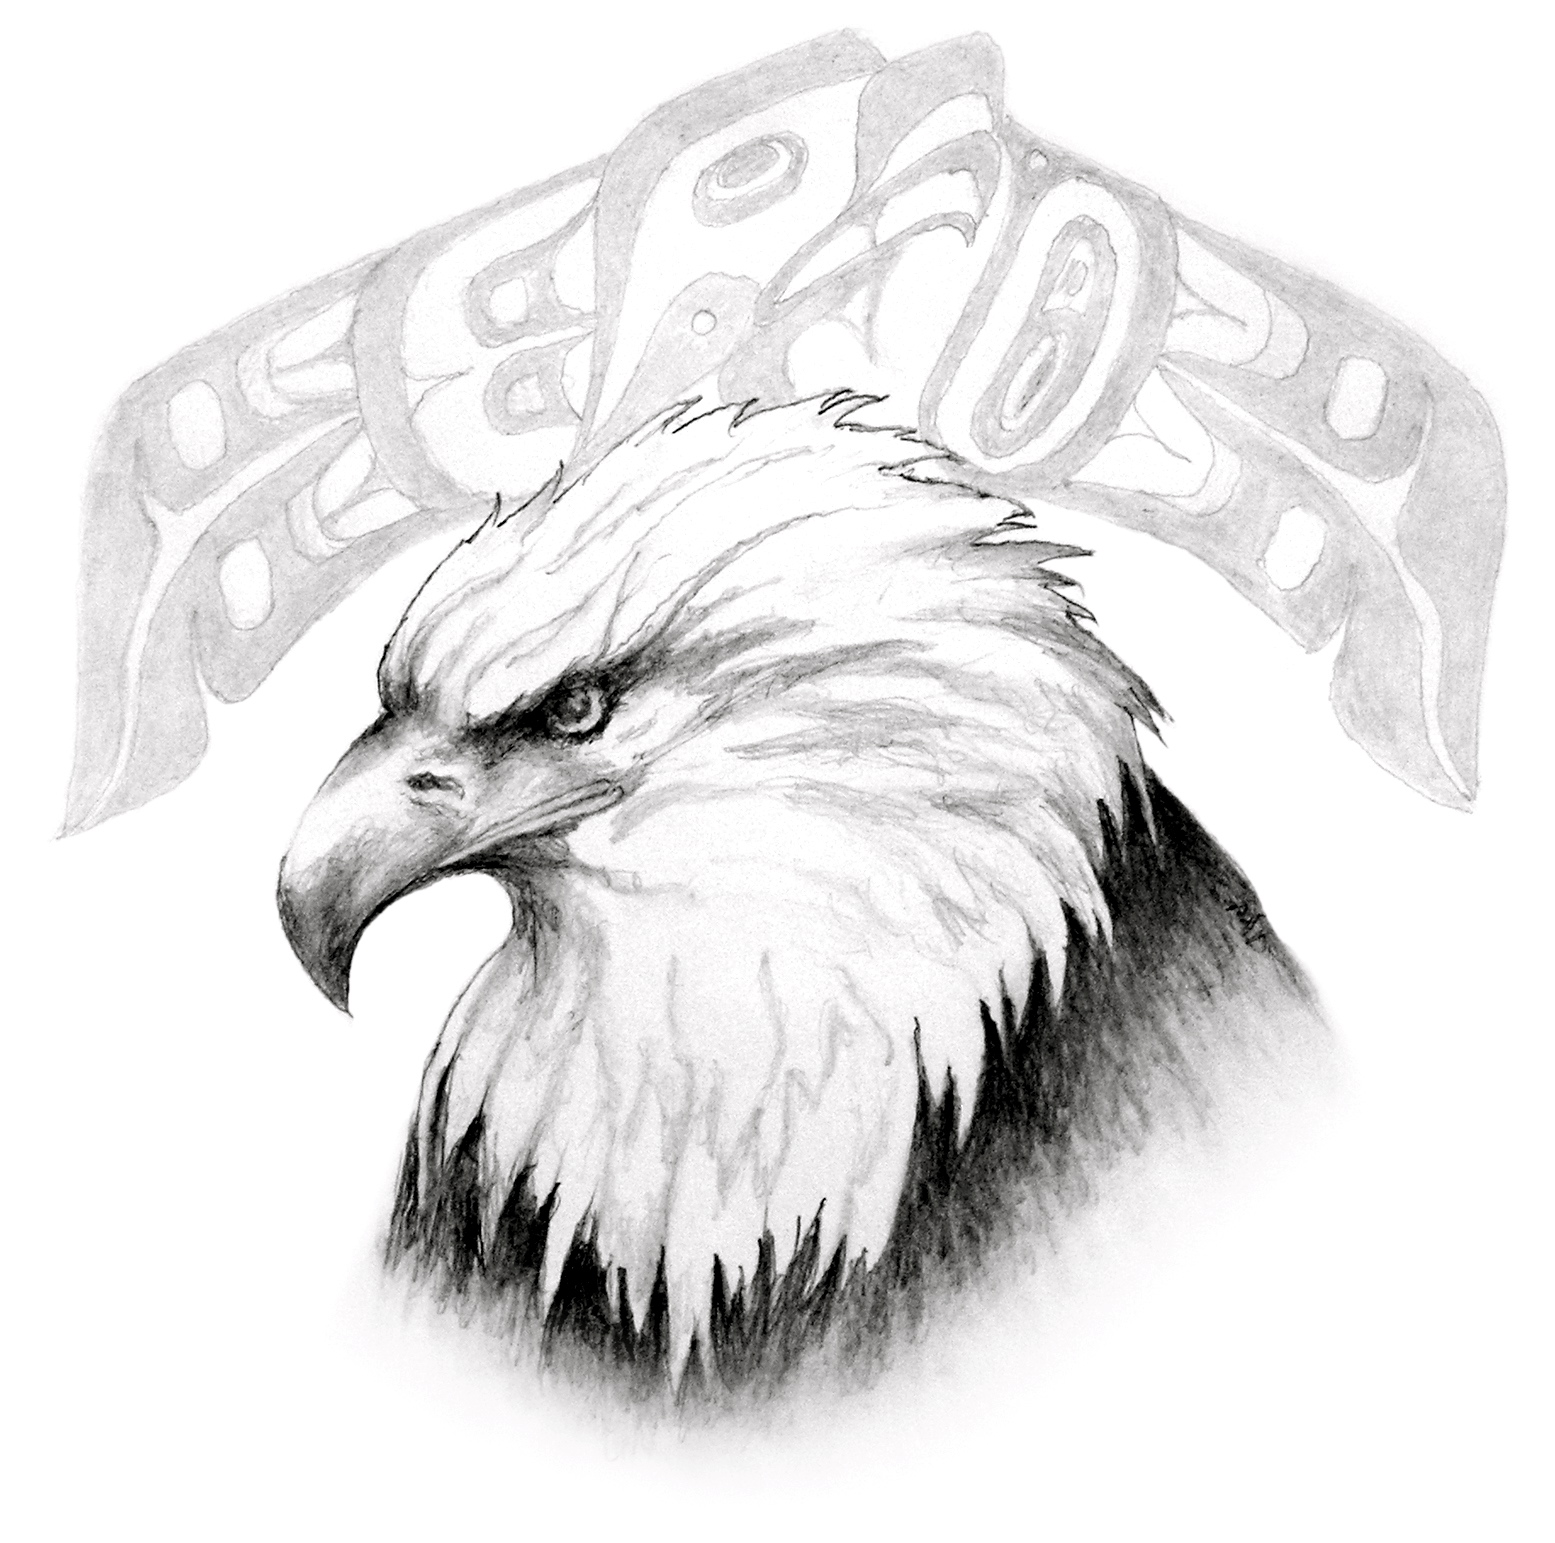 It's just a photo of Wild Drawing Of Eagle